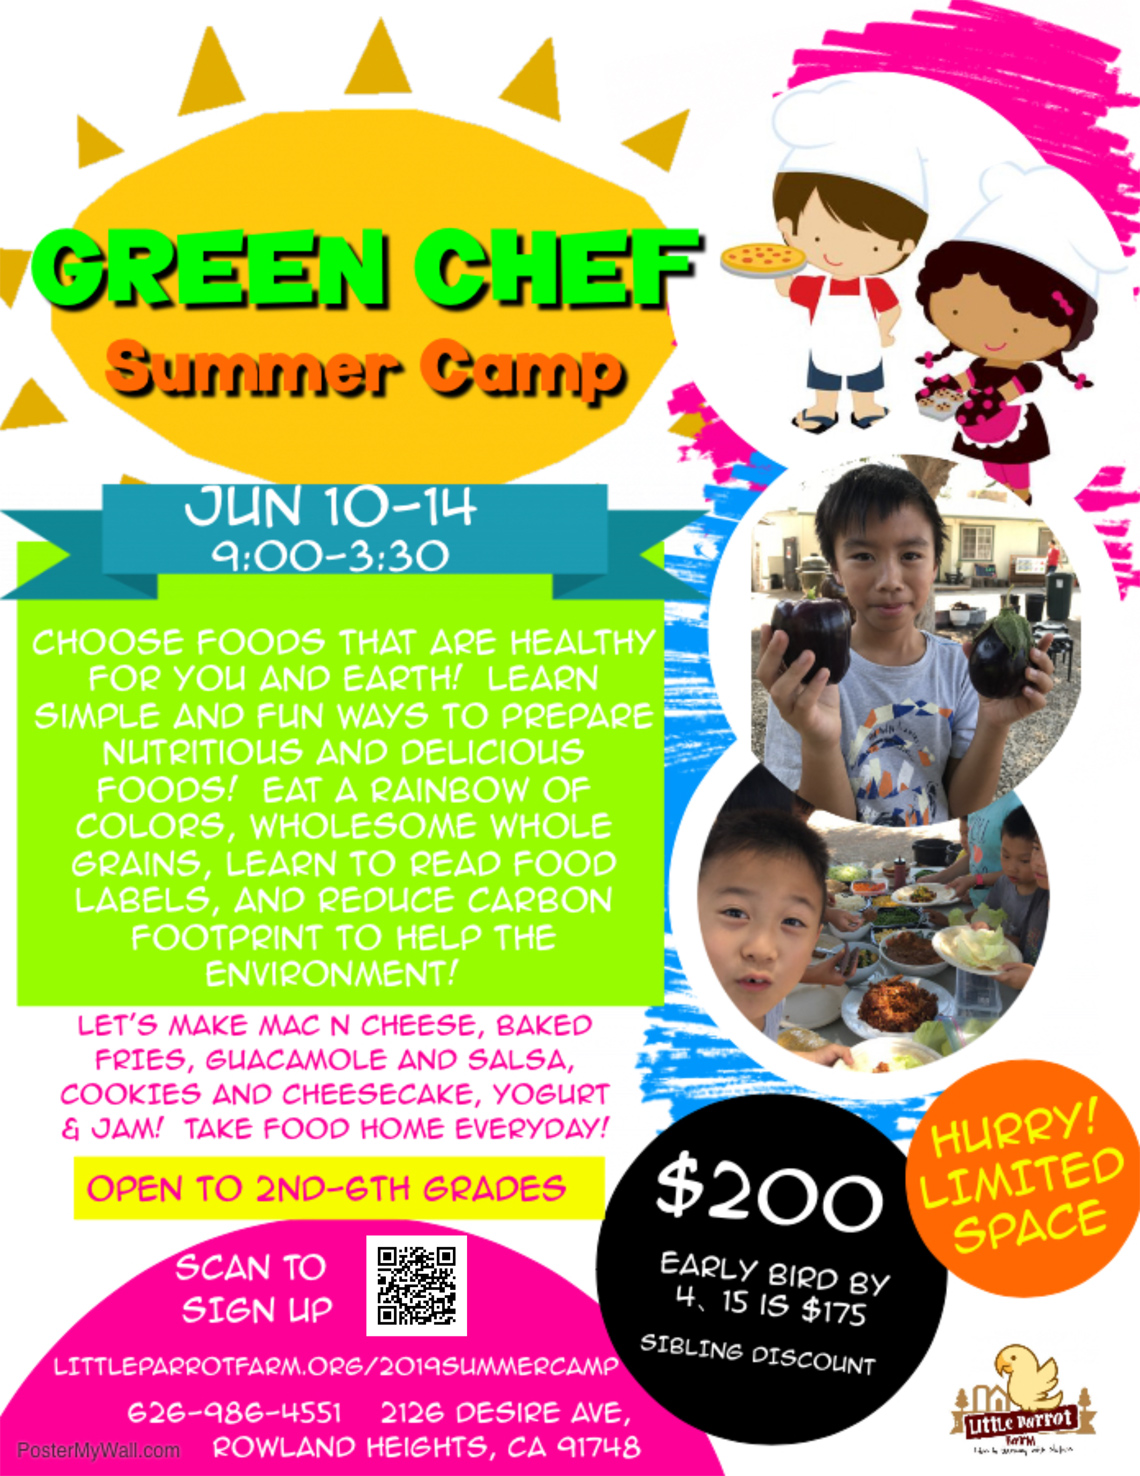 Summer Camp - Green Chef